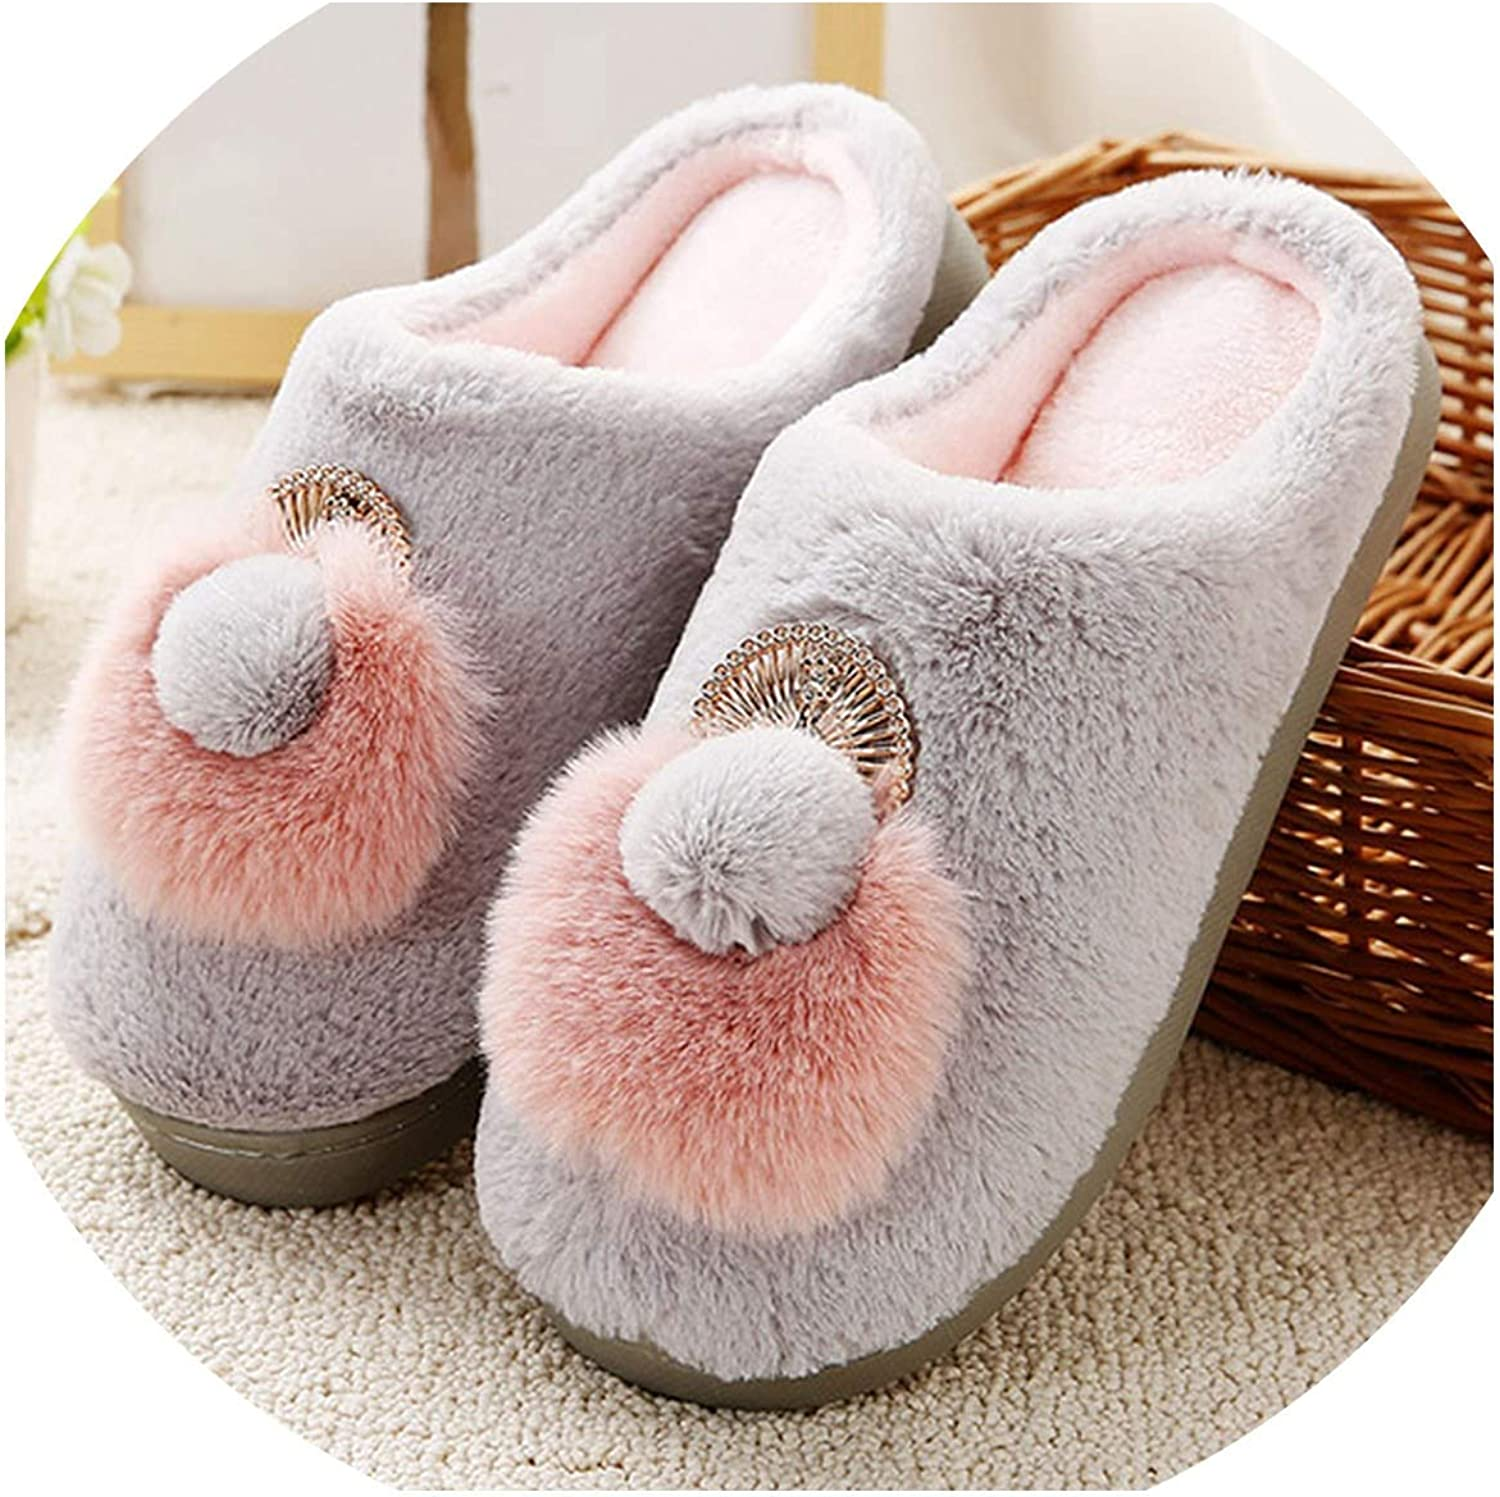 Can't be satisfied Women Slippers Winter Warm Soft Home Indoor Slippers Cartoon Flats Plus Size Women Slipper,Grey shoes,9.5